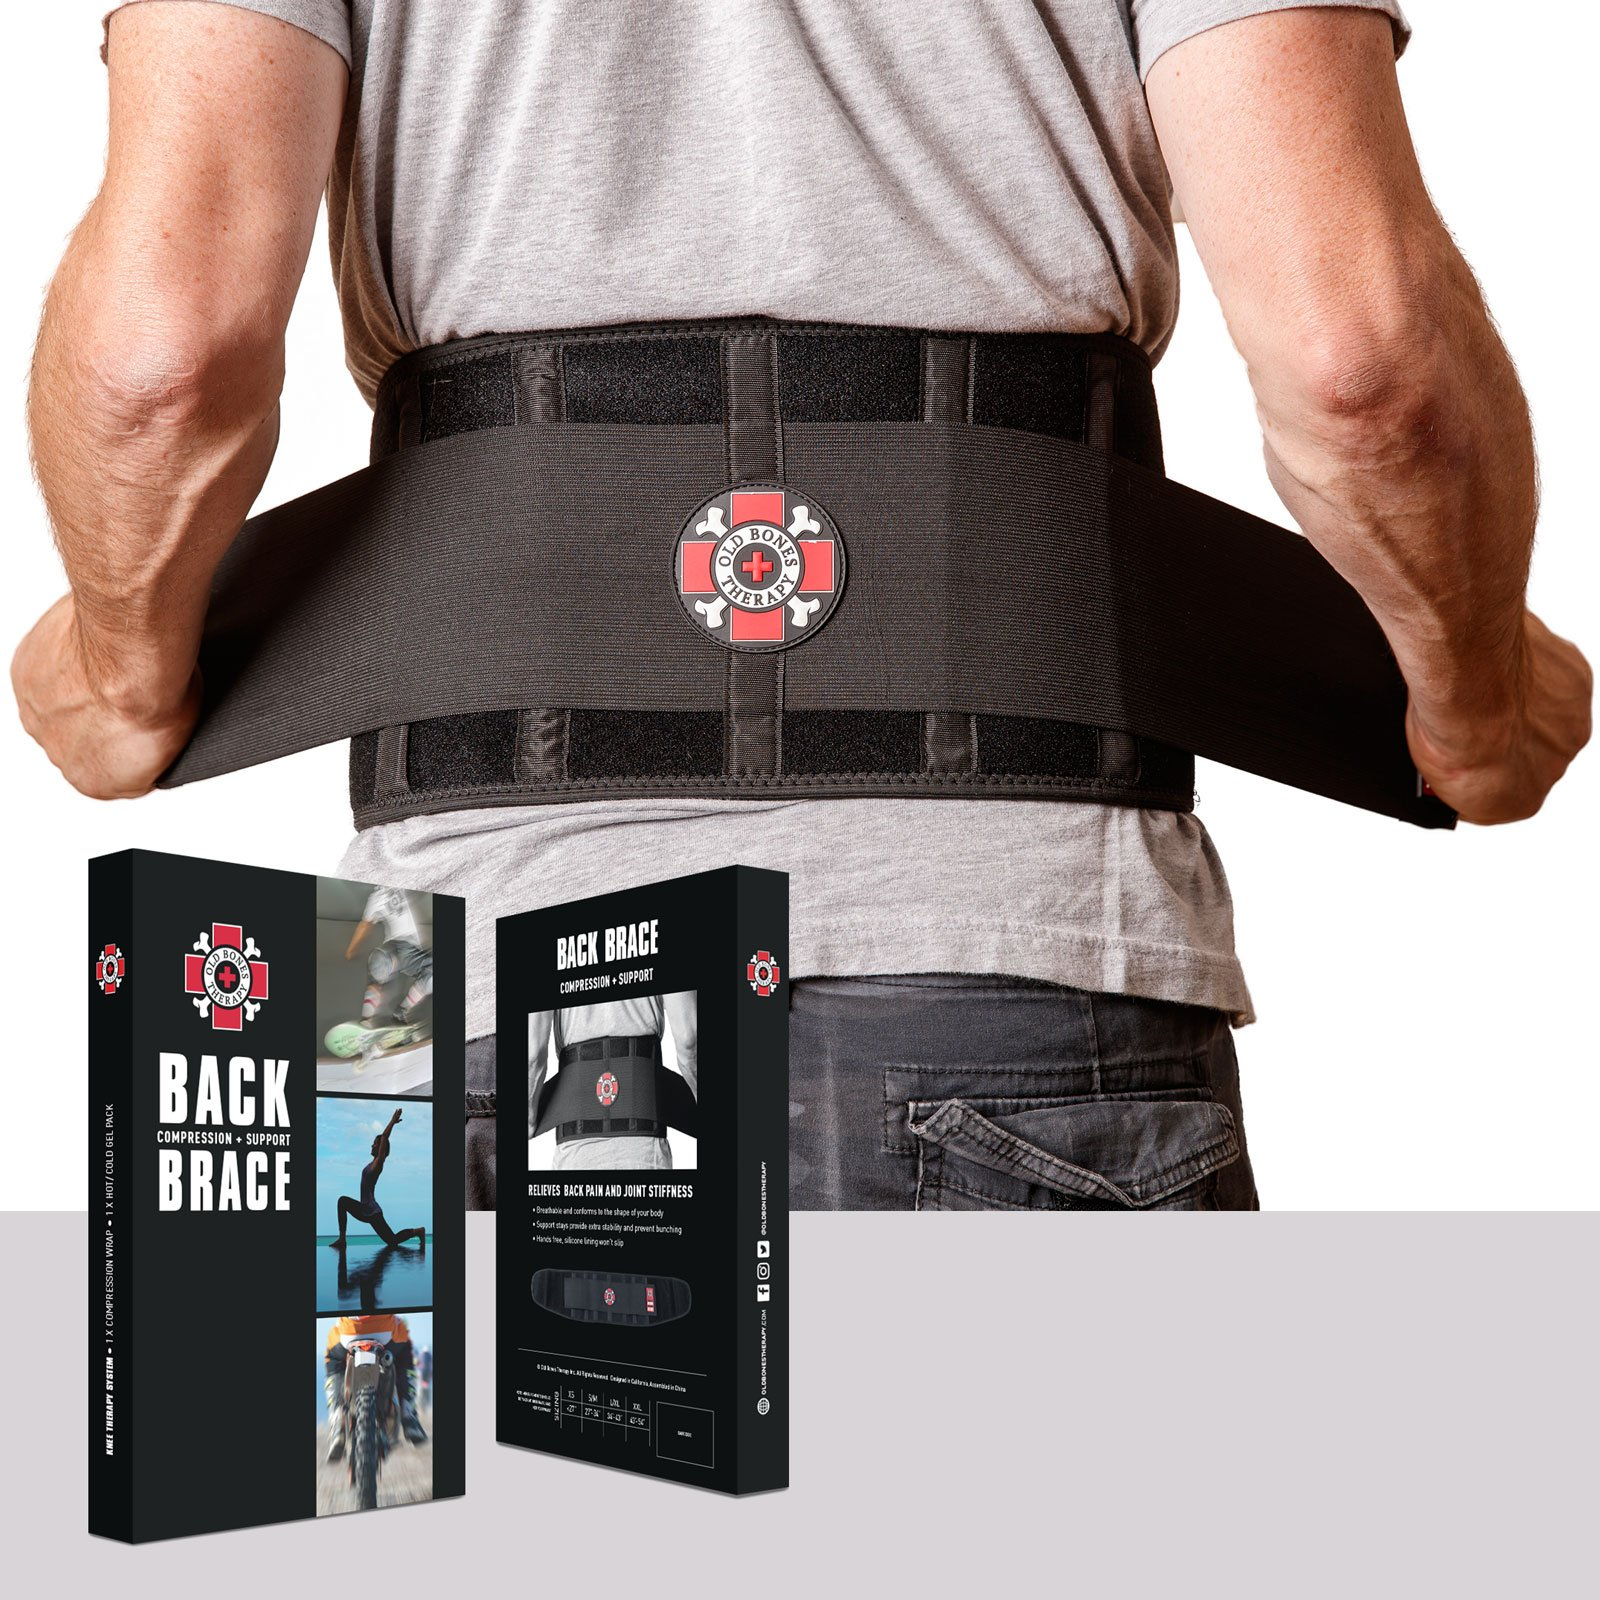 b2159a9fc7dfe Old Bones Therapy Back Brace - Immediate Pain Relief for Lower Back Pain -  Adjustable Back